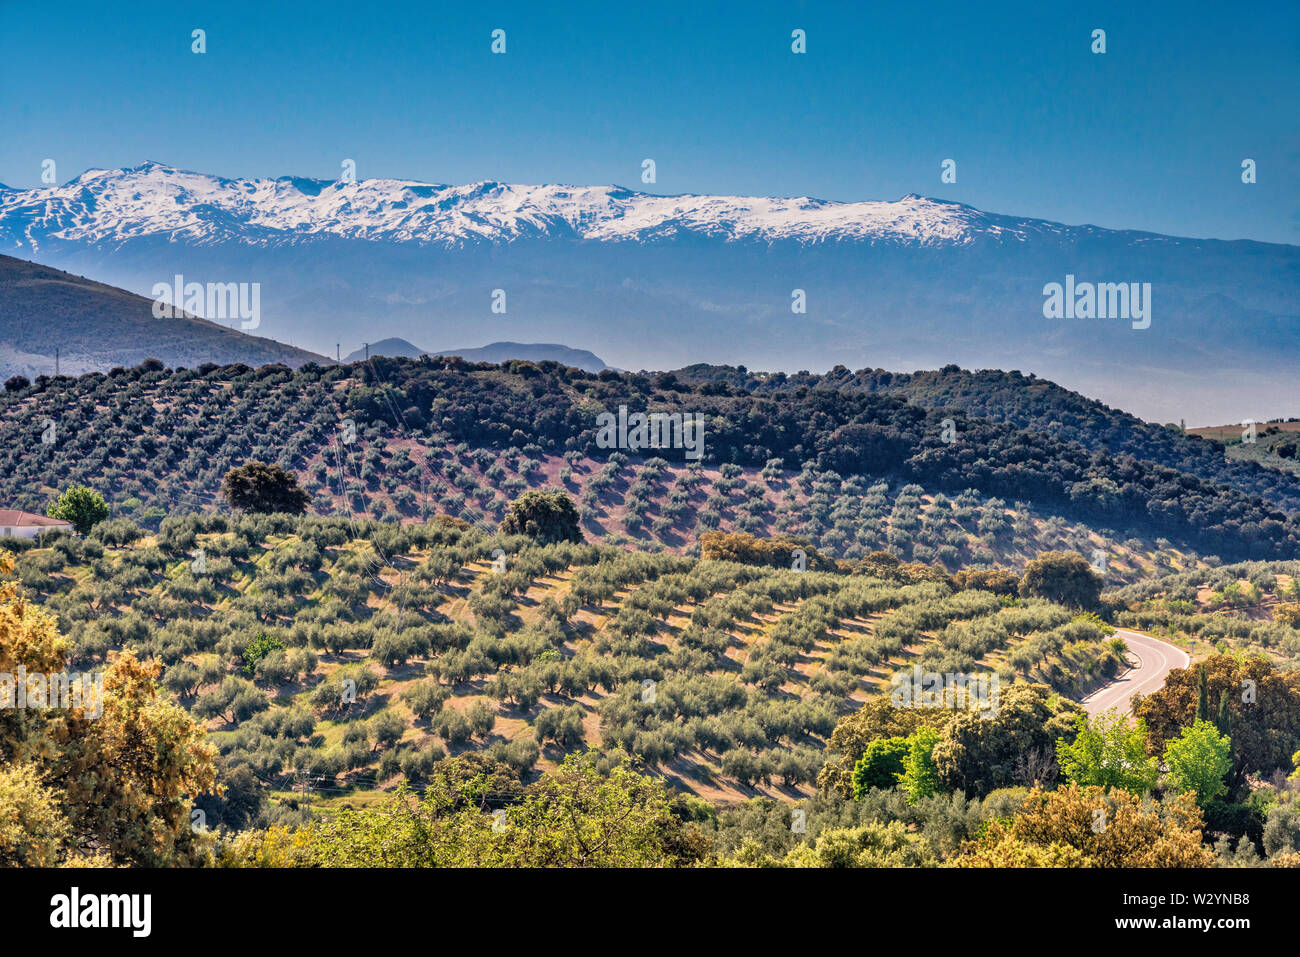 Sierra Nevada, seen in haze from 50 km away, over olive tree groves, from GR3410 road near town of Moclin, Granada province, Andalusia, Spain Stock Photo